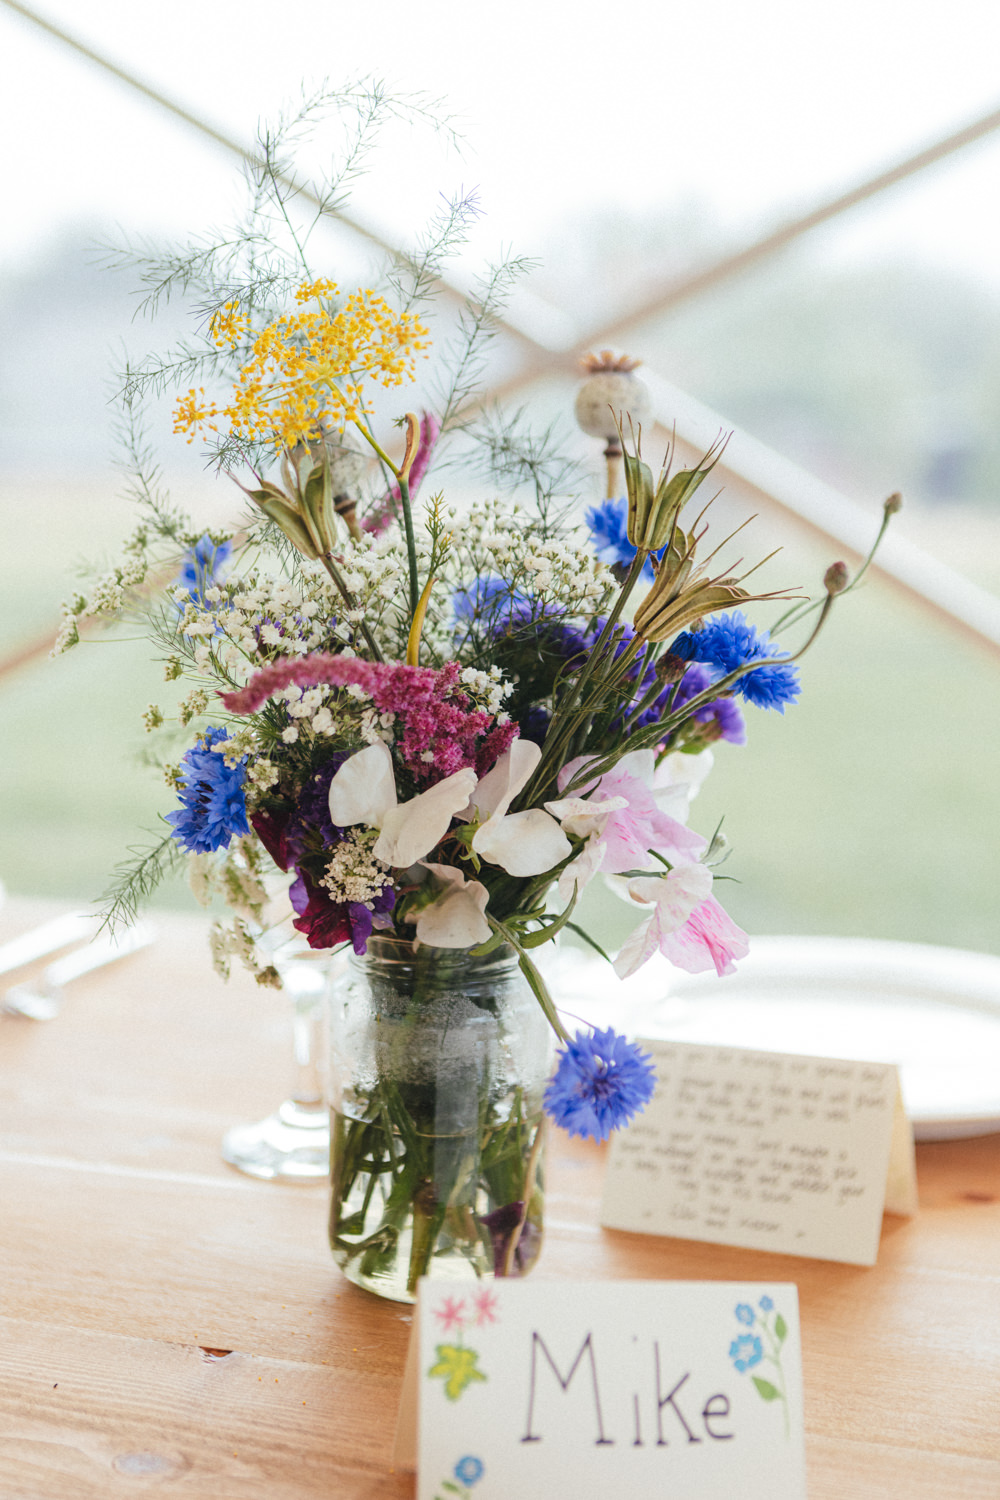 wildflowers, wedding decor, flowers, outdoor wedding photography